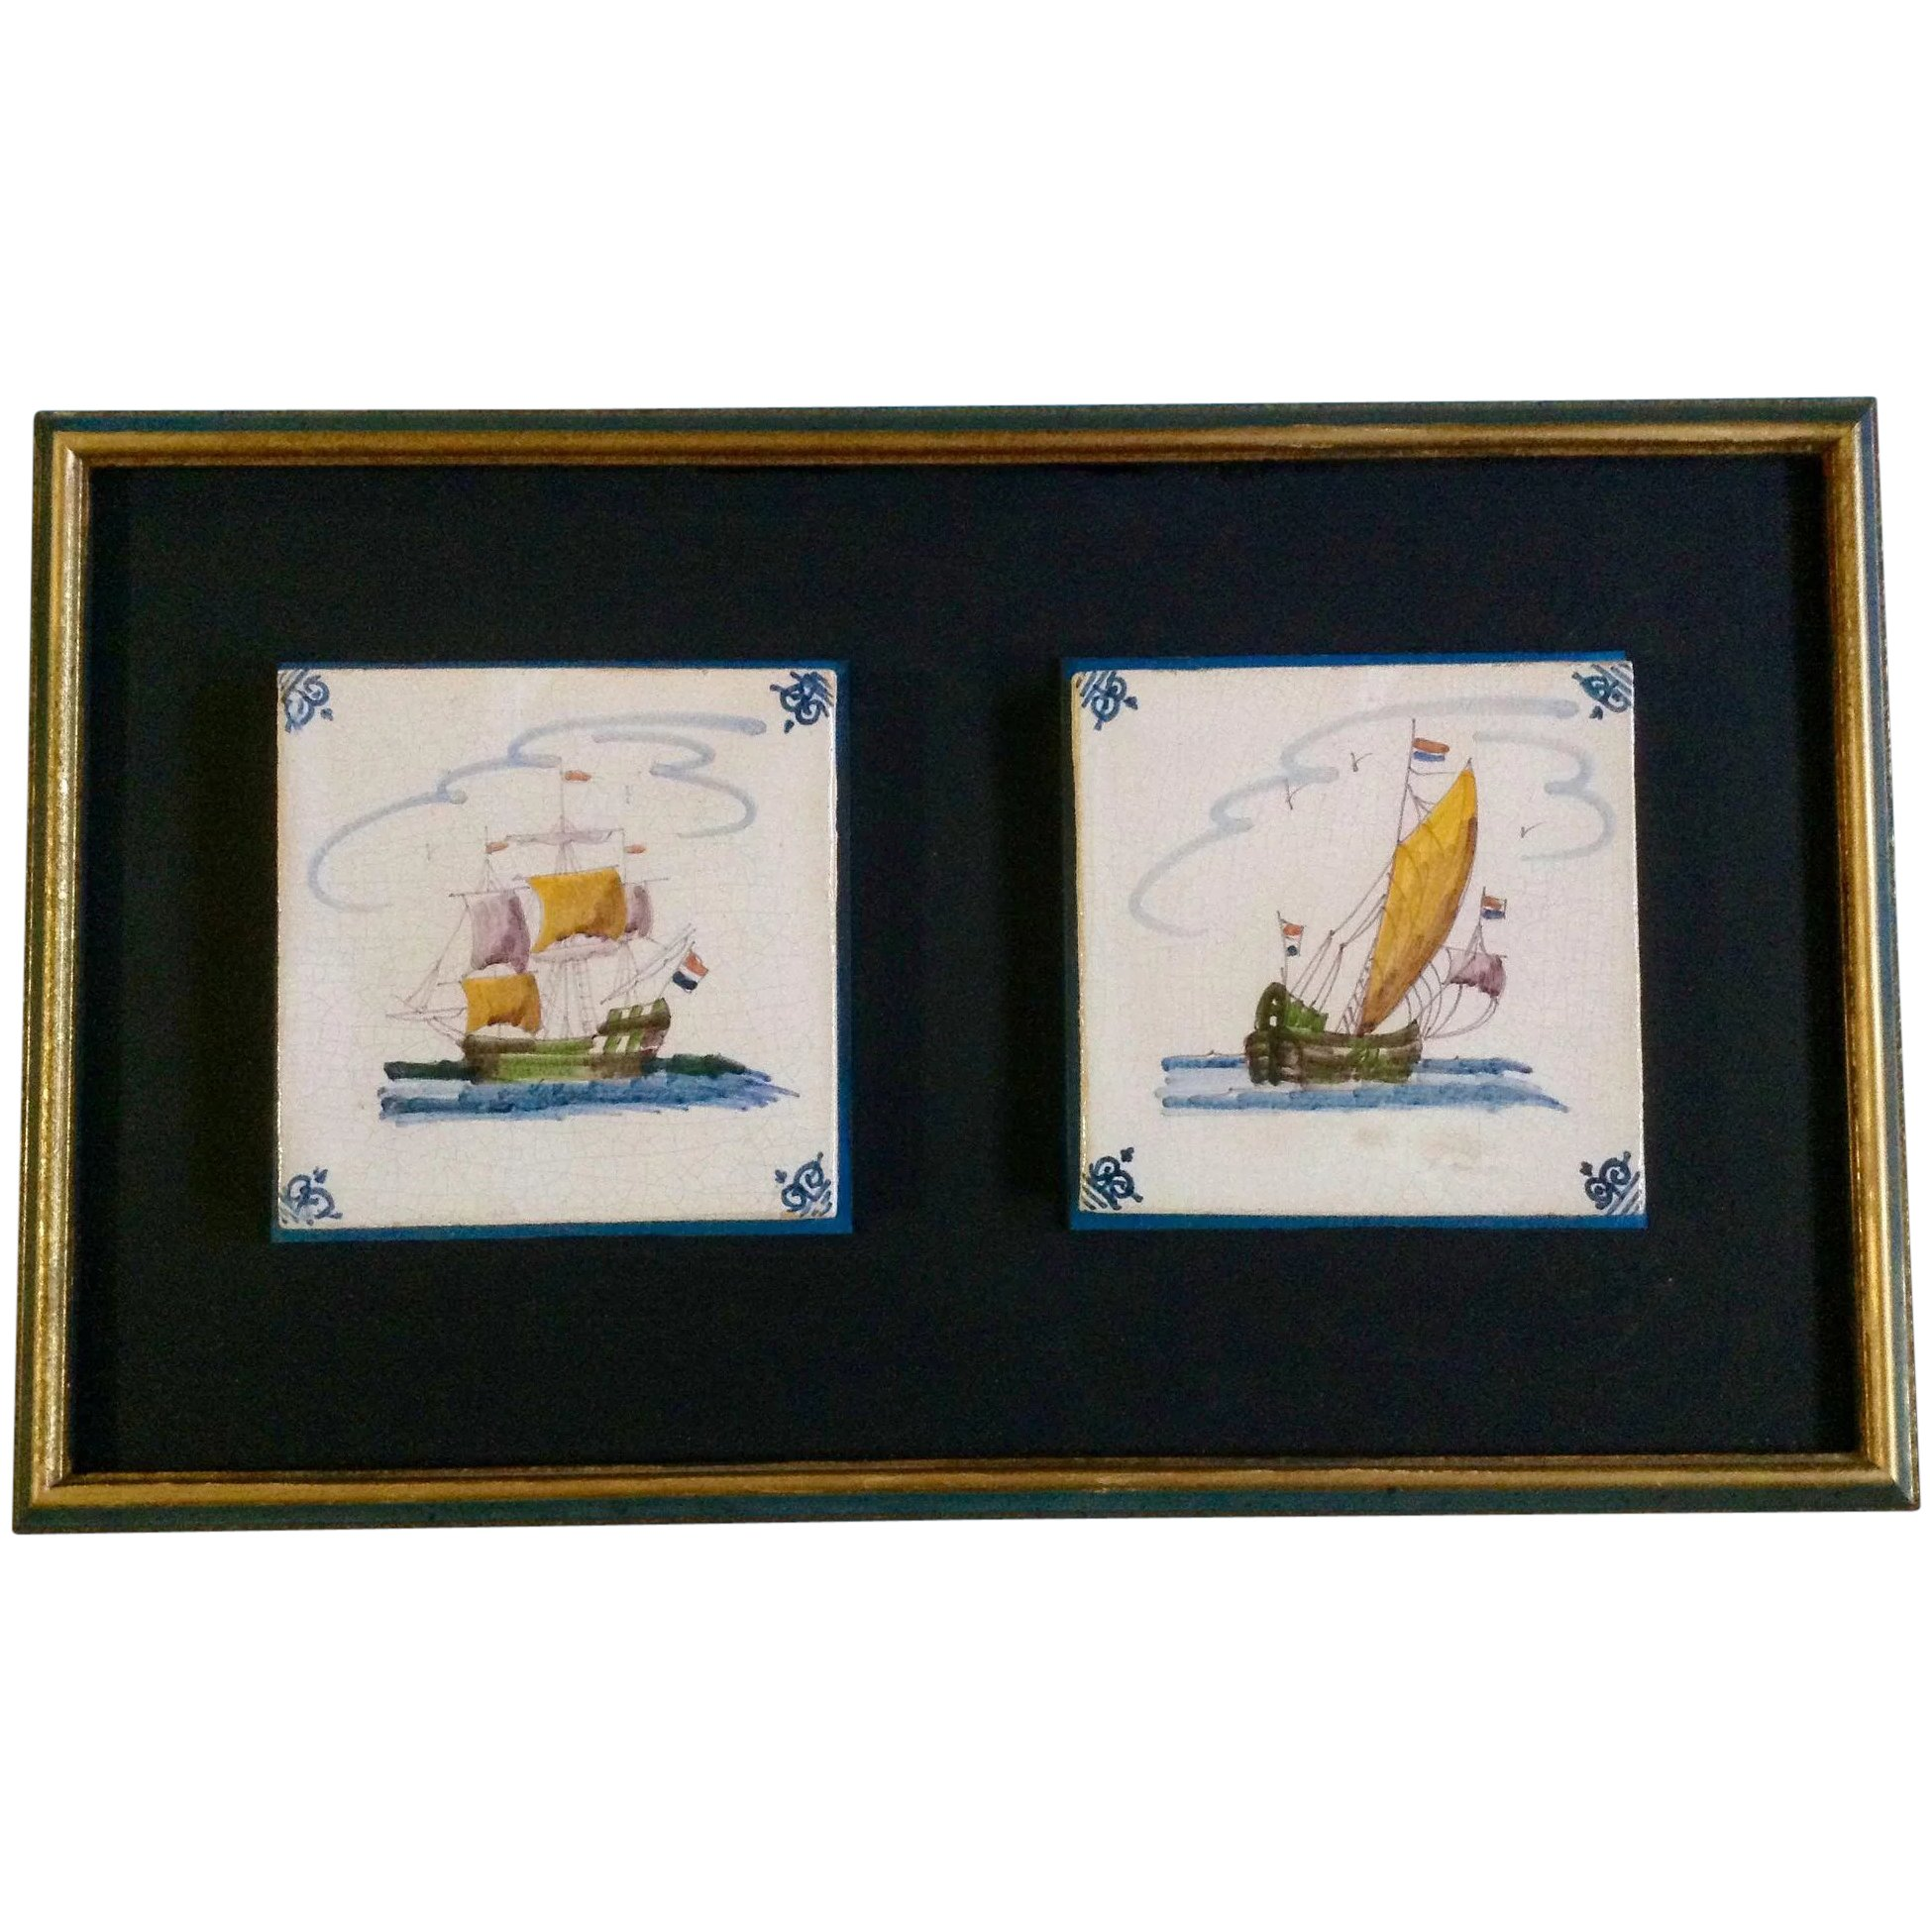 Delftware ceramic tile vintage old dutch tiles two sailing ships click to expand dailygadgetfo Image collections